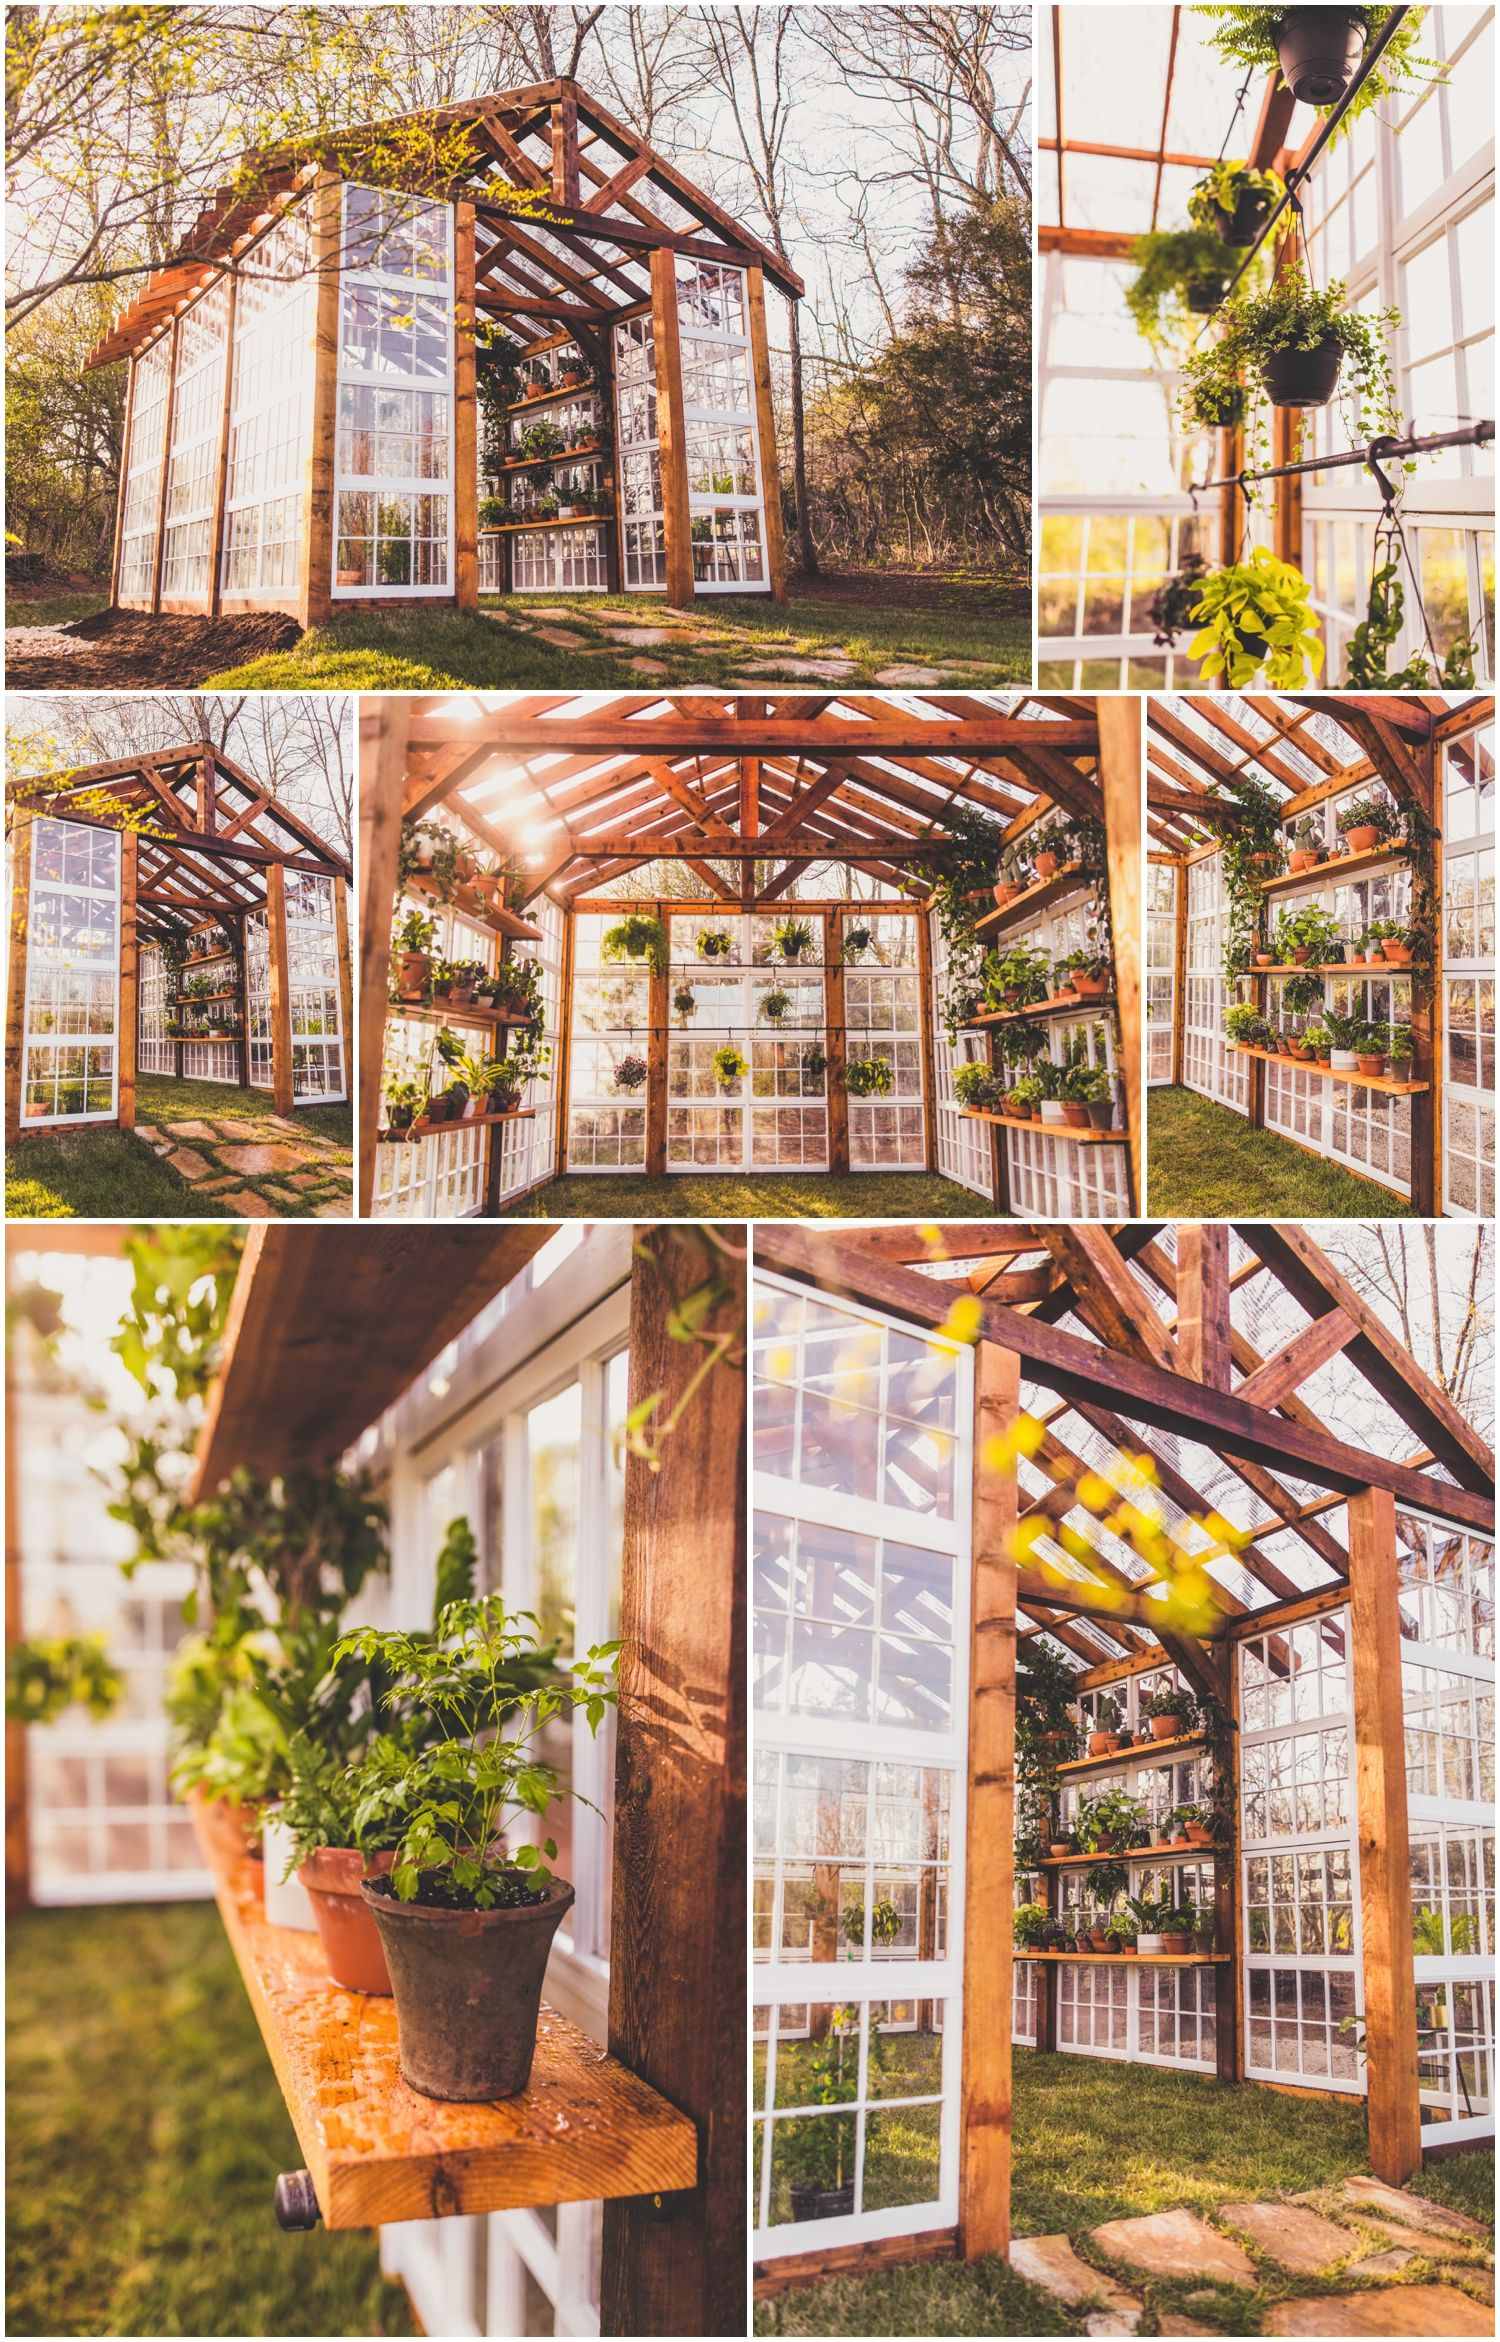 The Vaughan House Greenhouse Located In Virginia. Built By